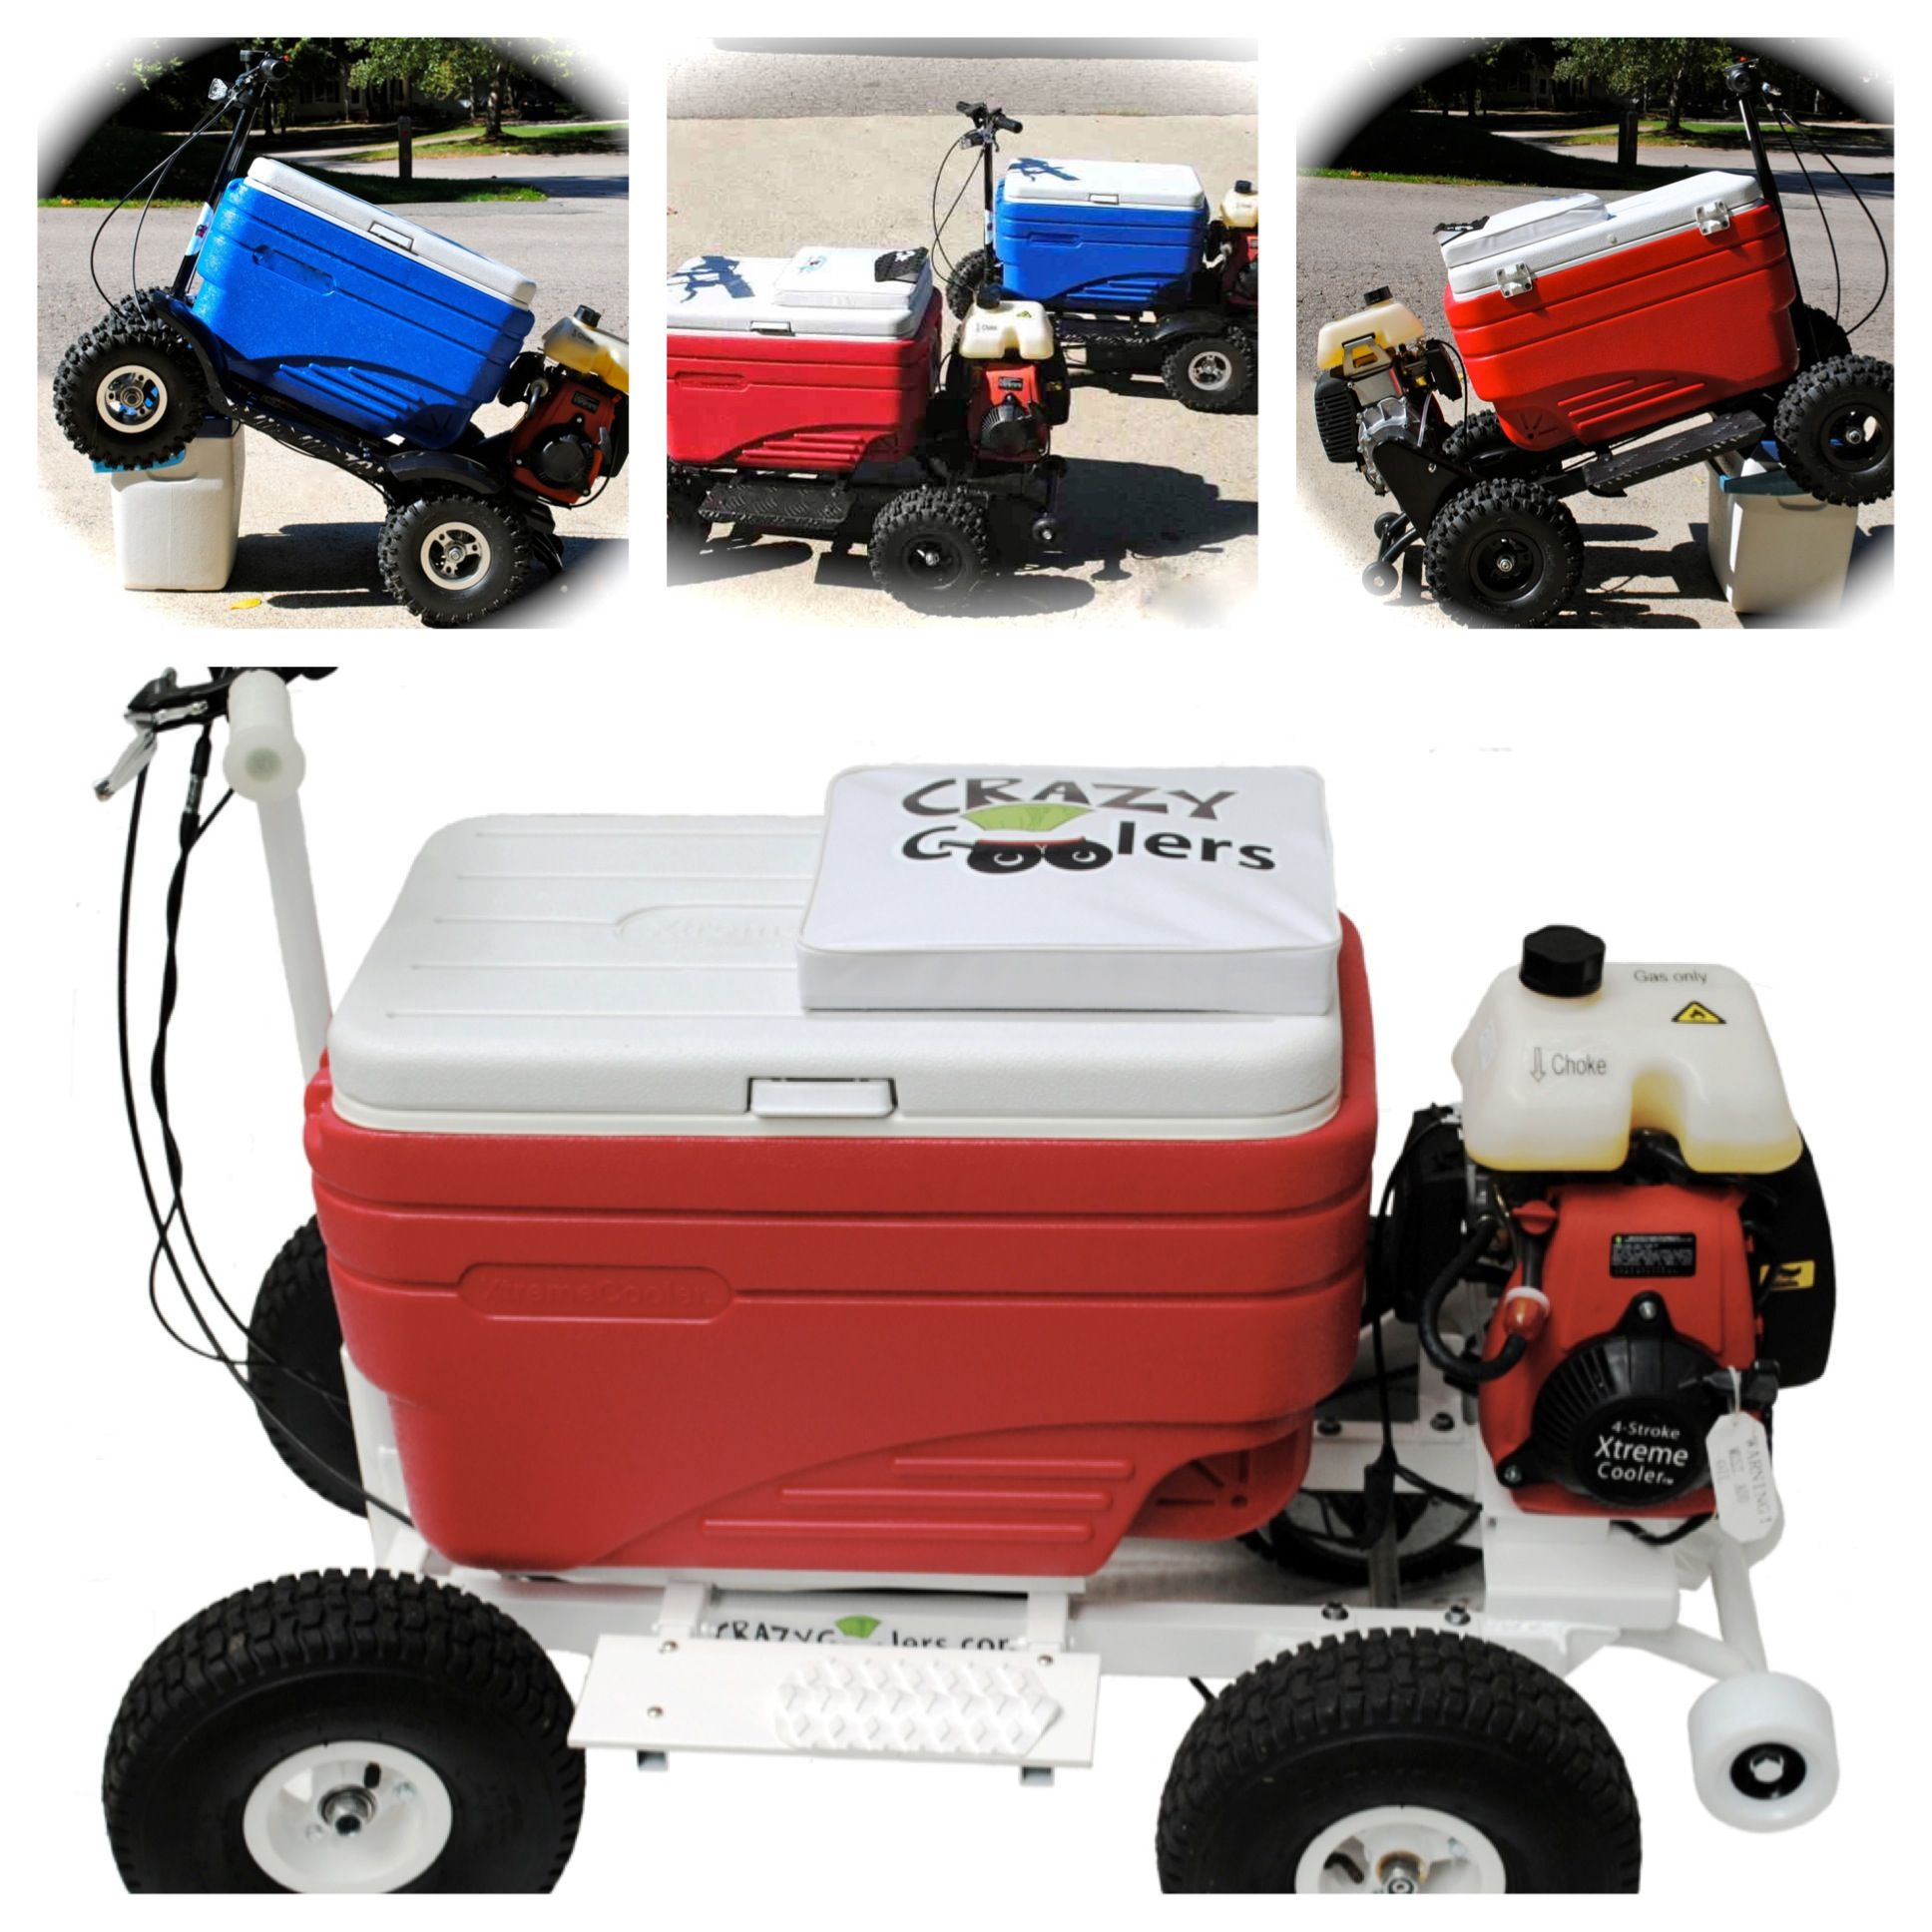 Crazy coolers motorized fun motorized coolers pinterest for Motor cooler on wheels